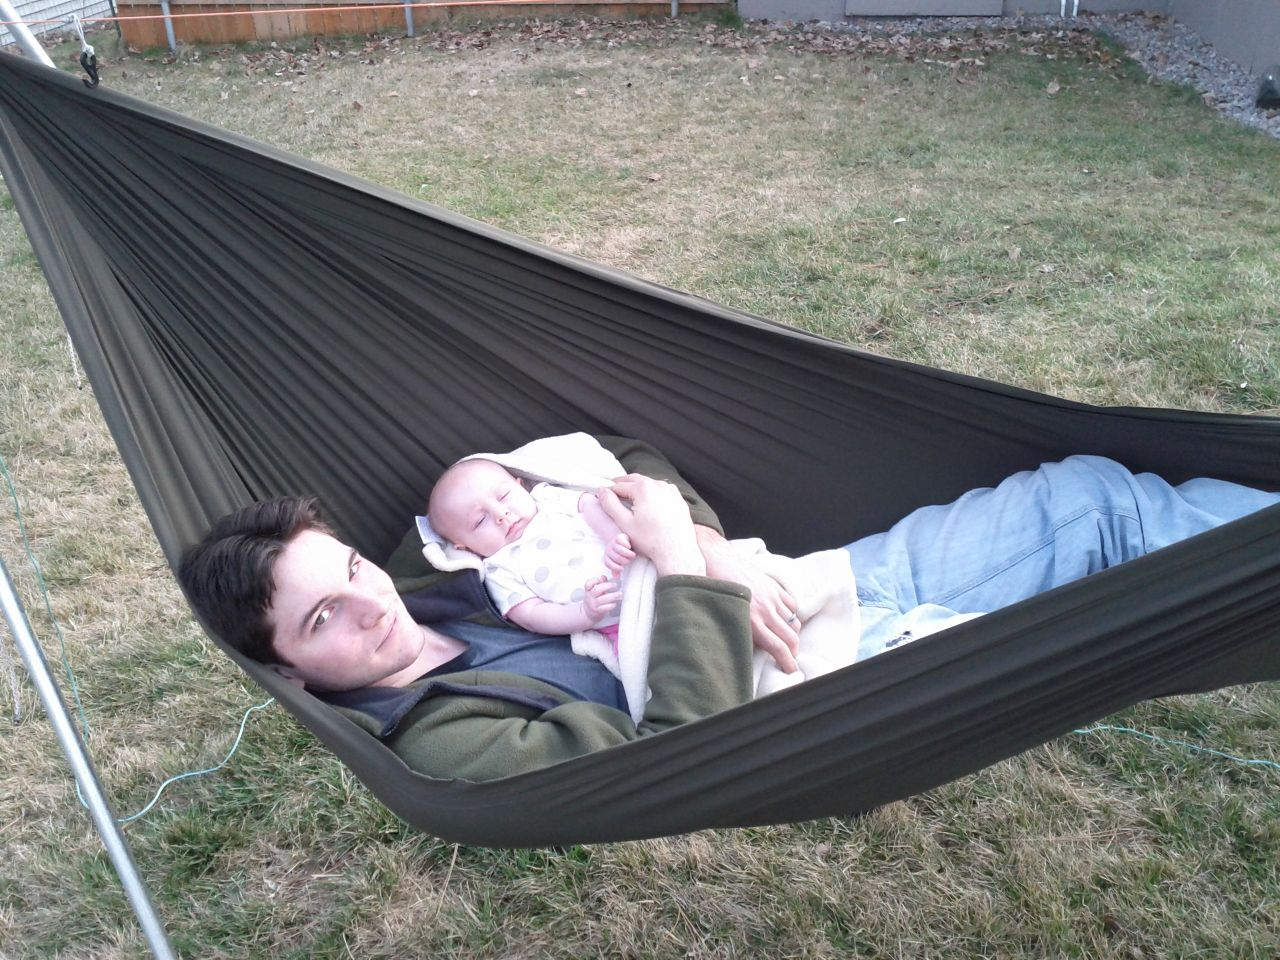 Babies Love Hammocks Too!